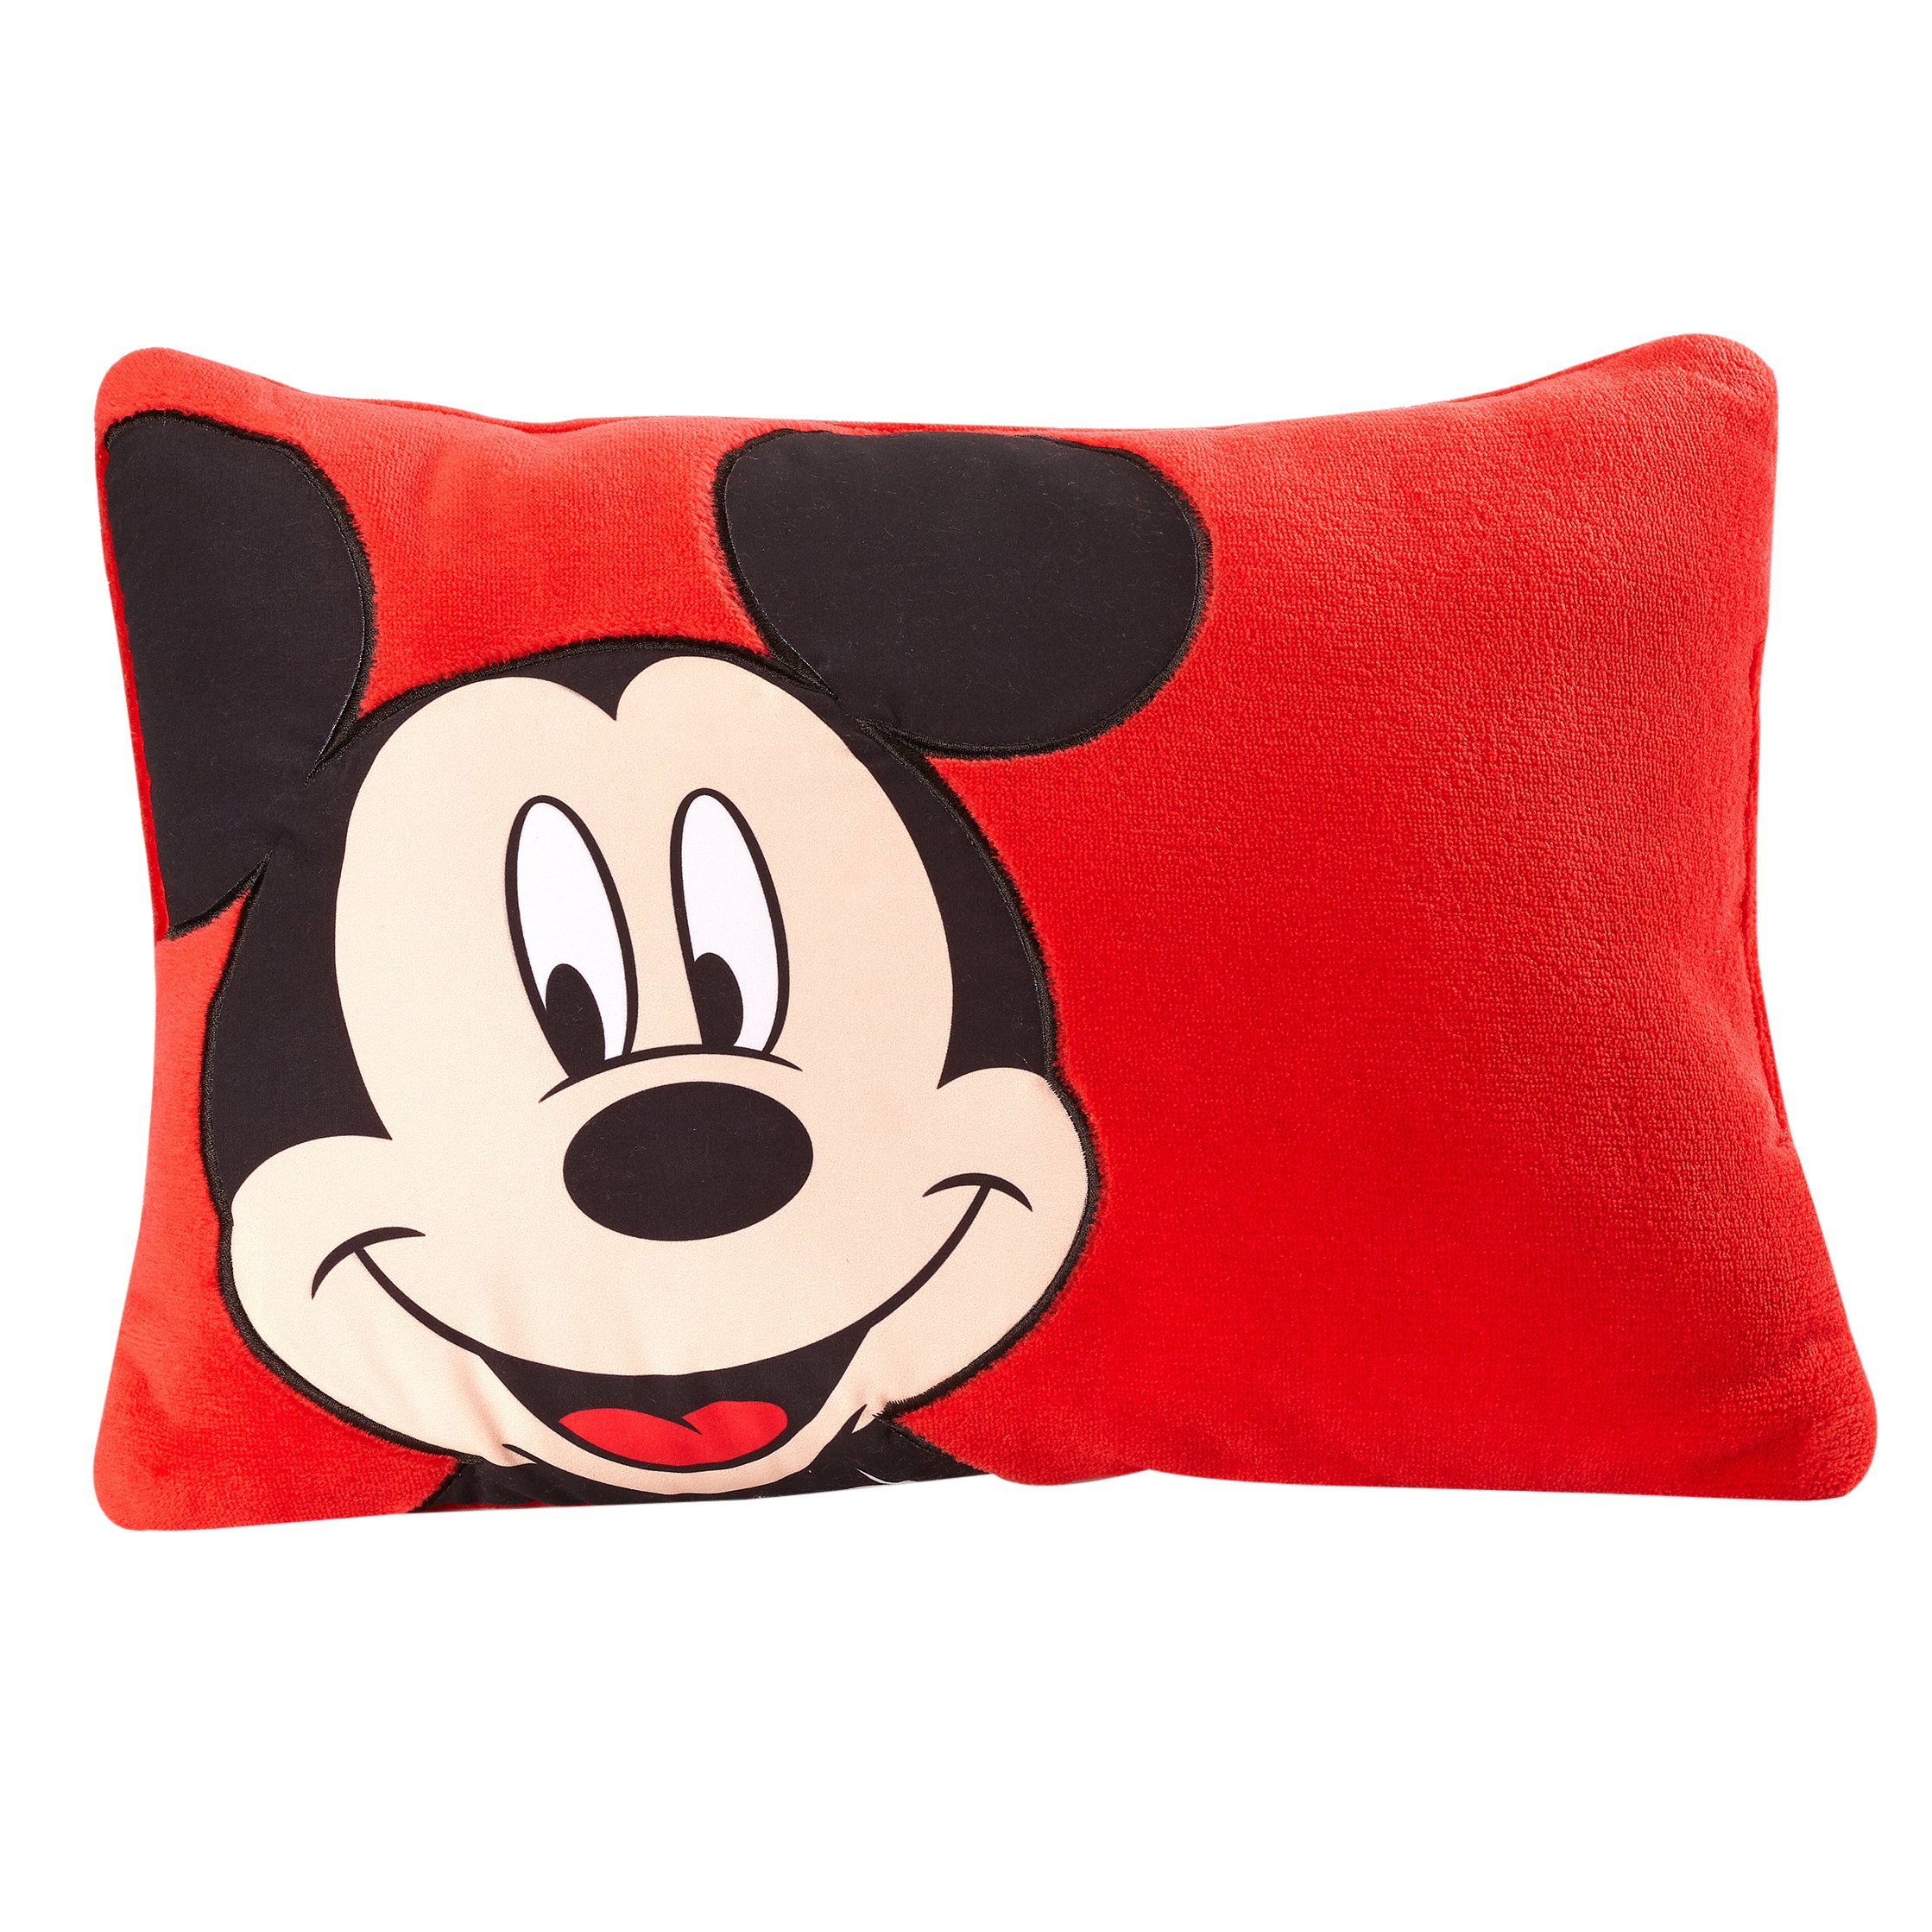 Disney Mickey Decorative Pillow, Red by Disney